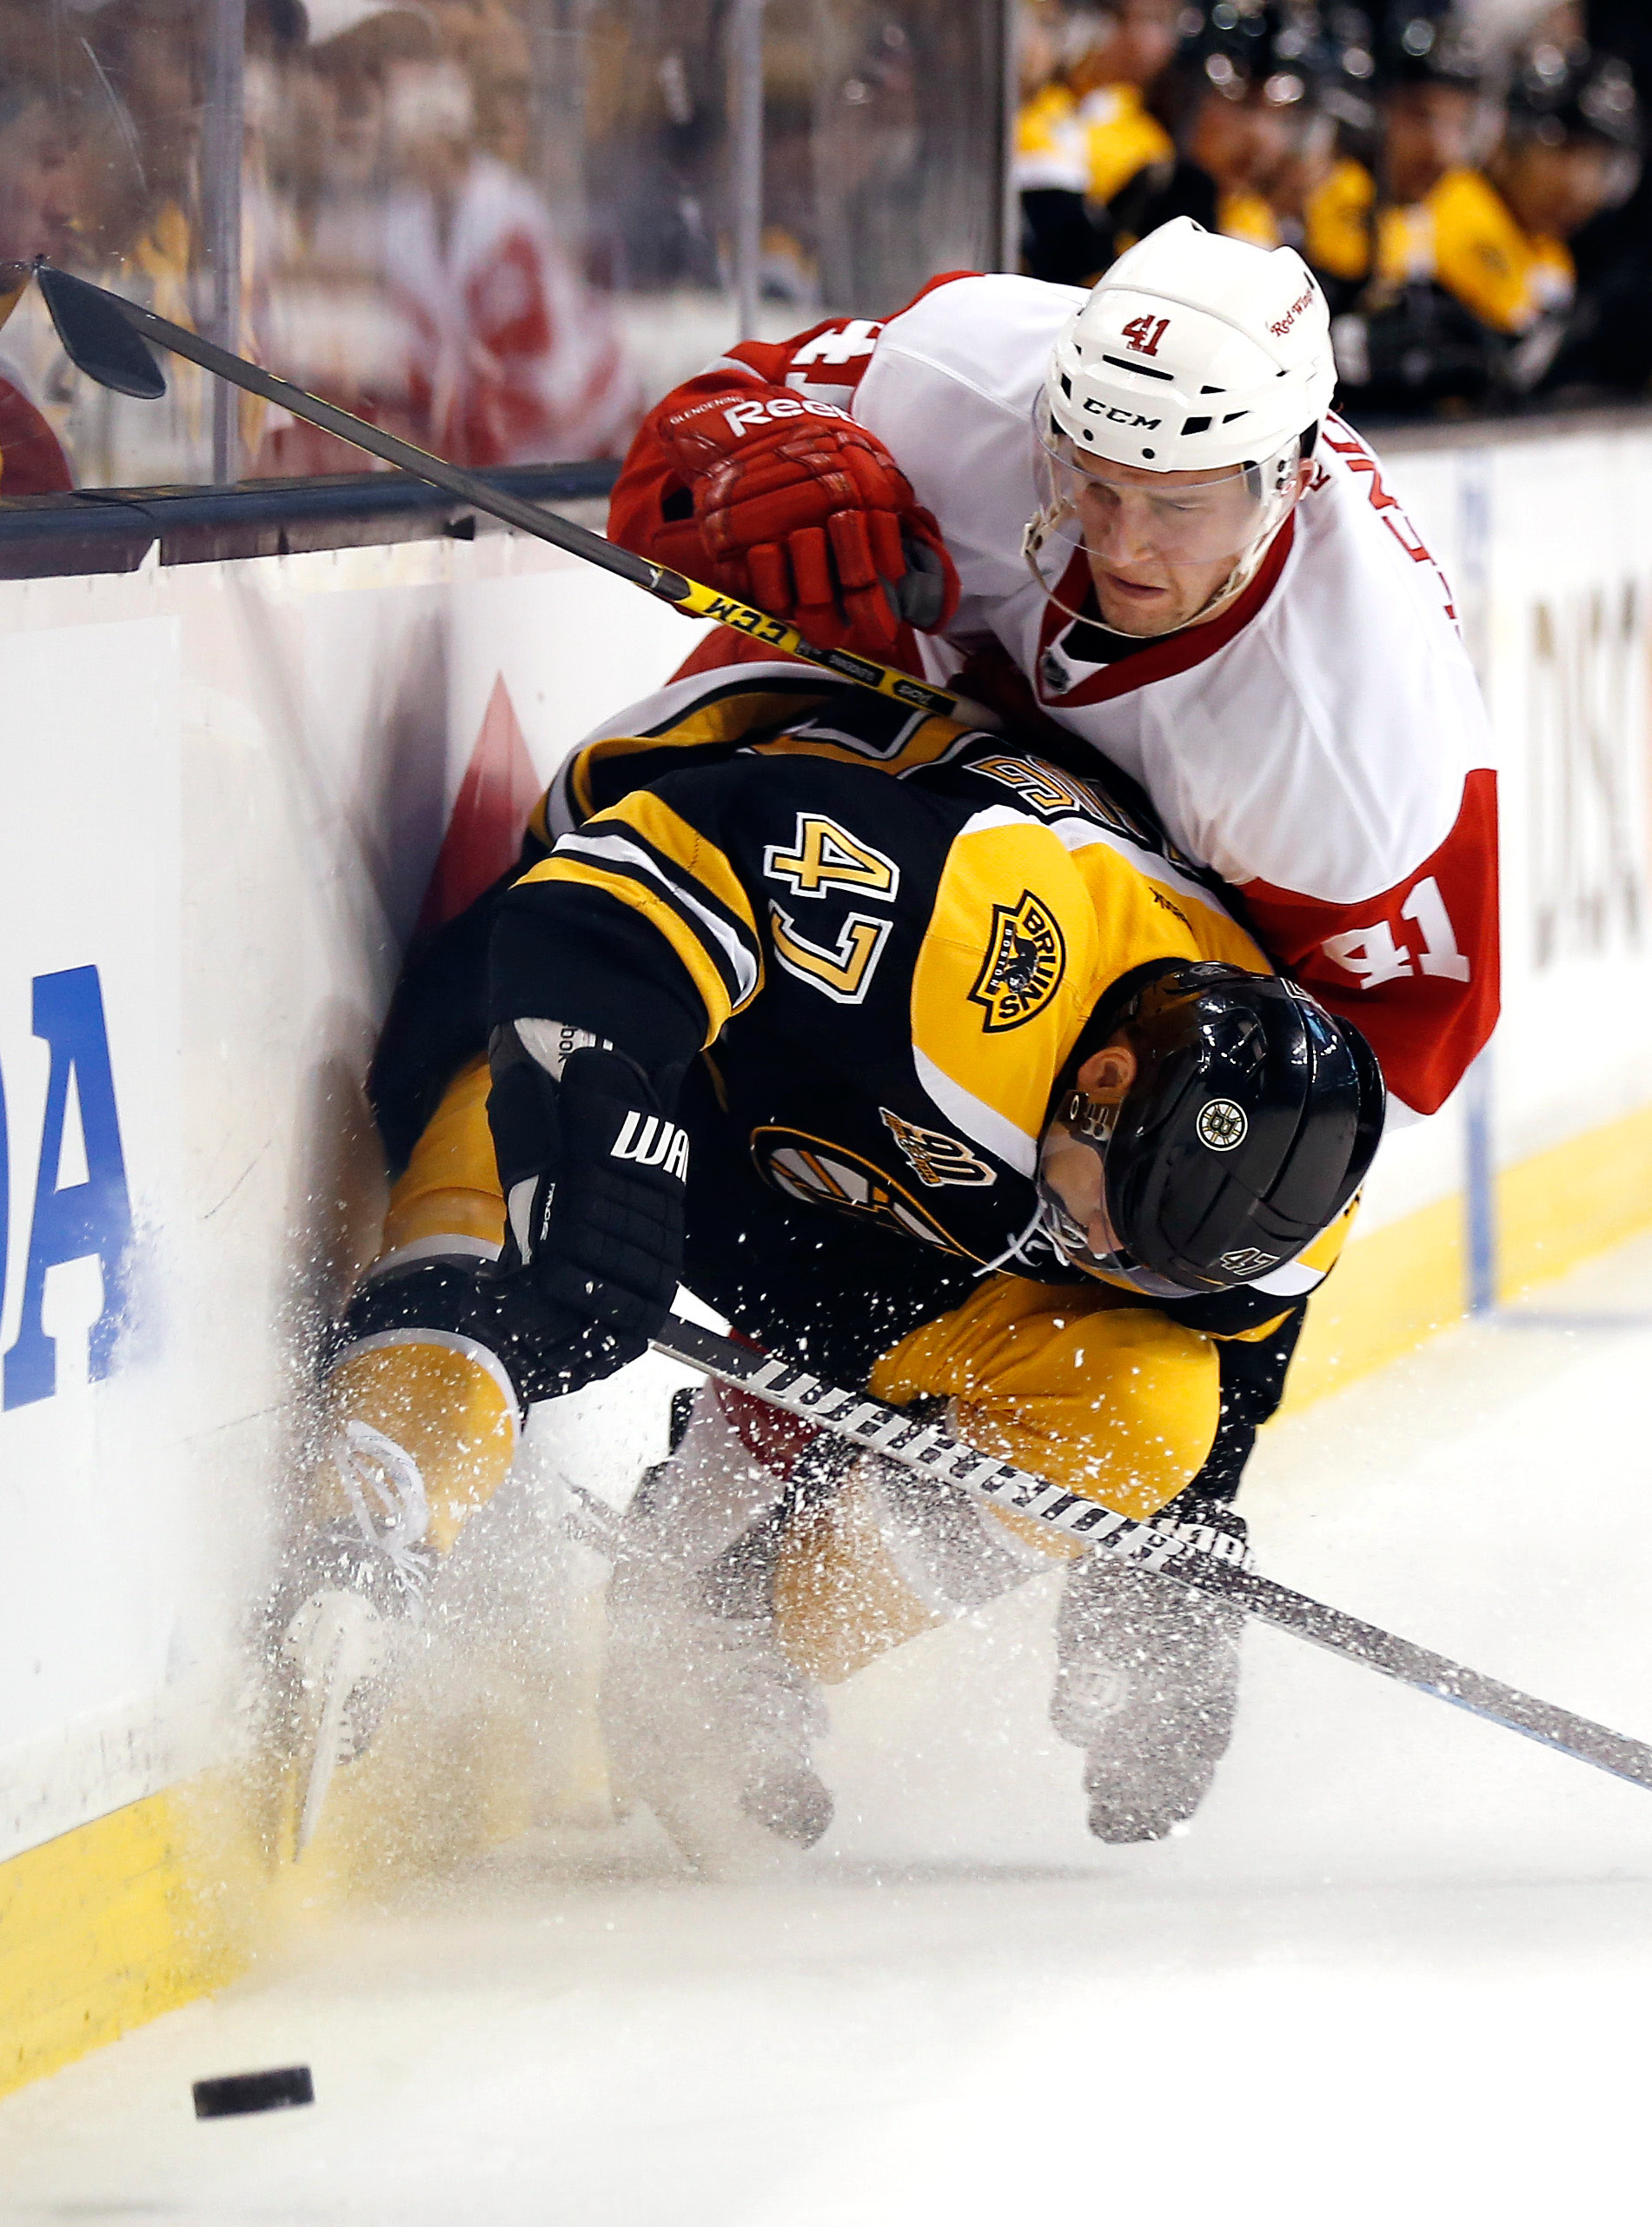 Bruins' defenseman Torey Krug (47) stops Detroit's Luke Glendening from getting around him during Sunday's NHL playoff game in Boston. | Associated Press